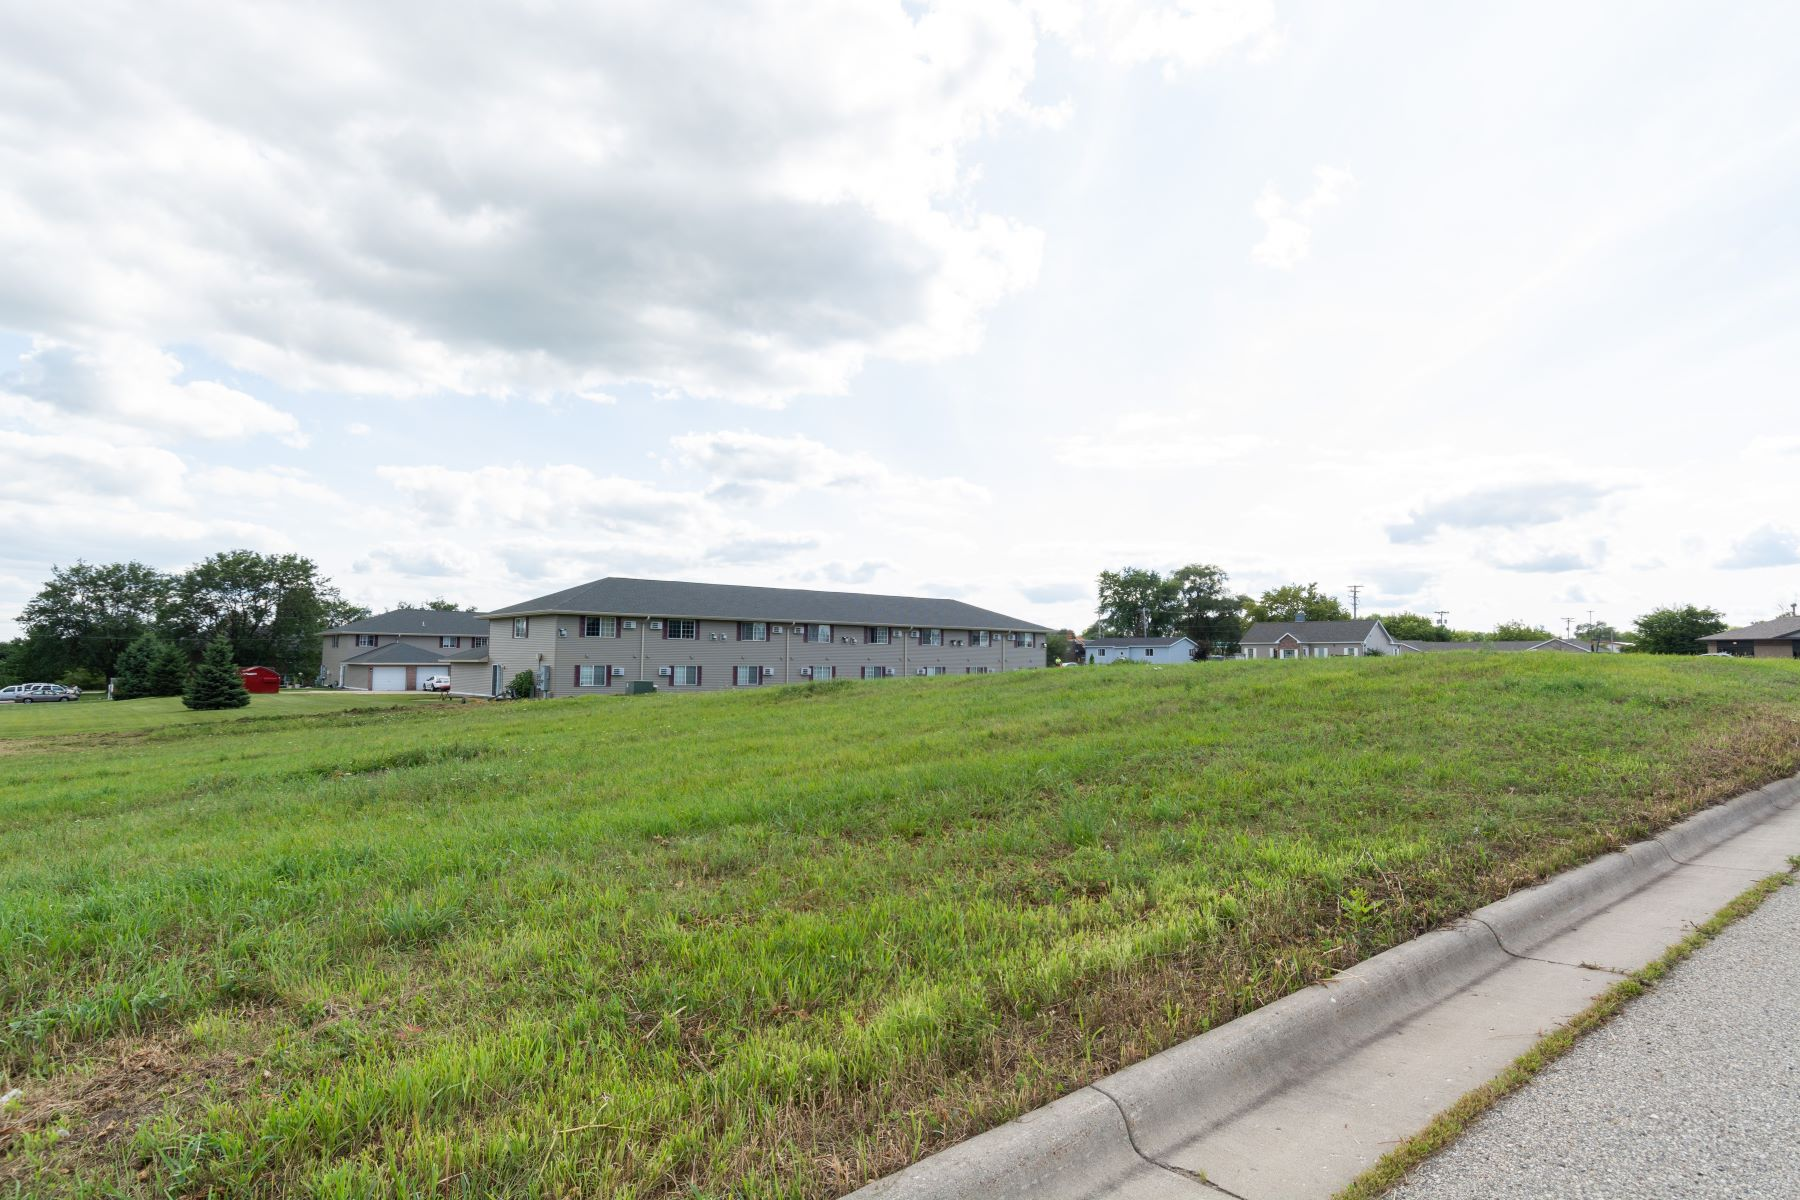 土地,用地 为 销售 在 Multiunit Residential Development Opportunity 813-849 King Street Janesville, 威斯康星州 53546 美国